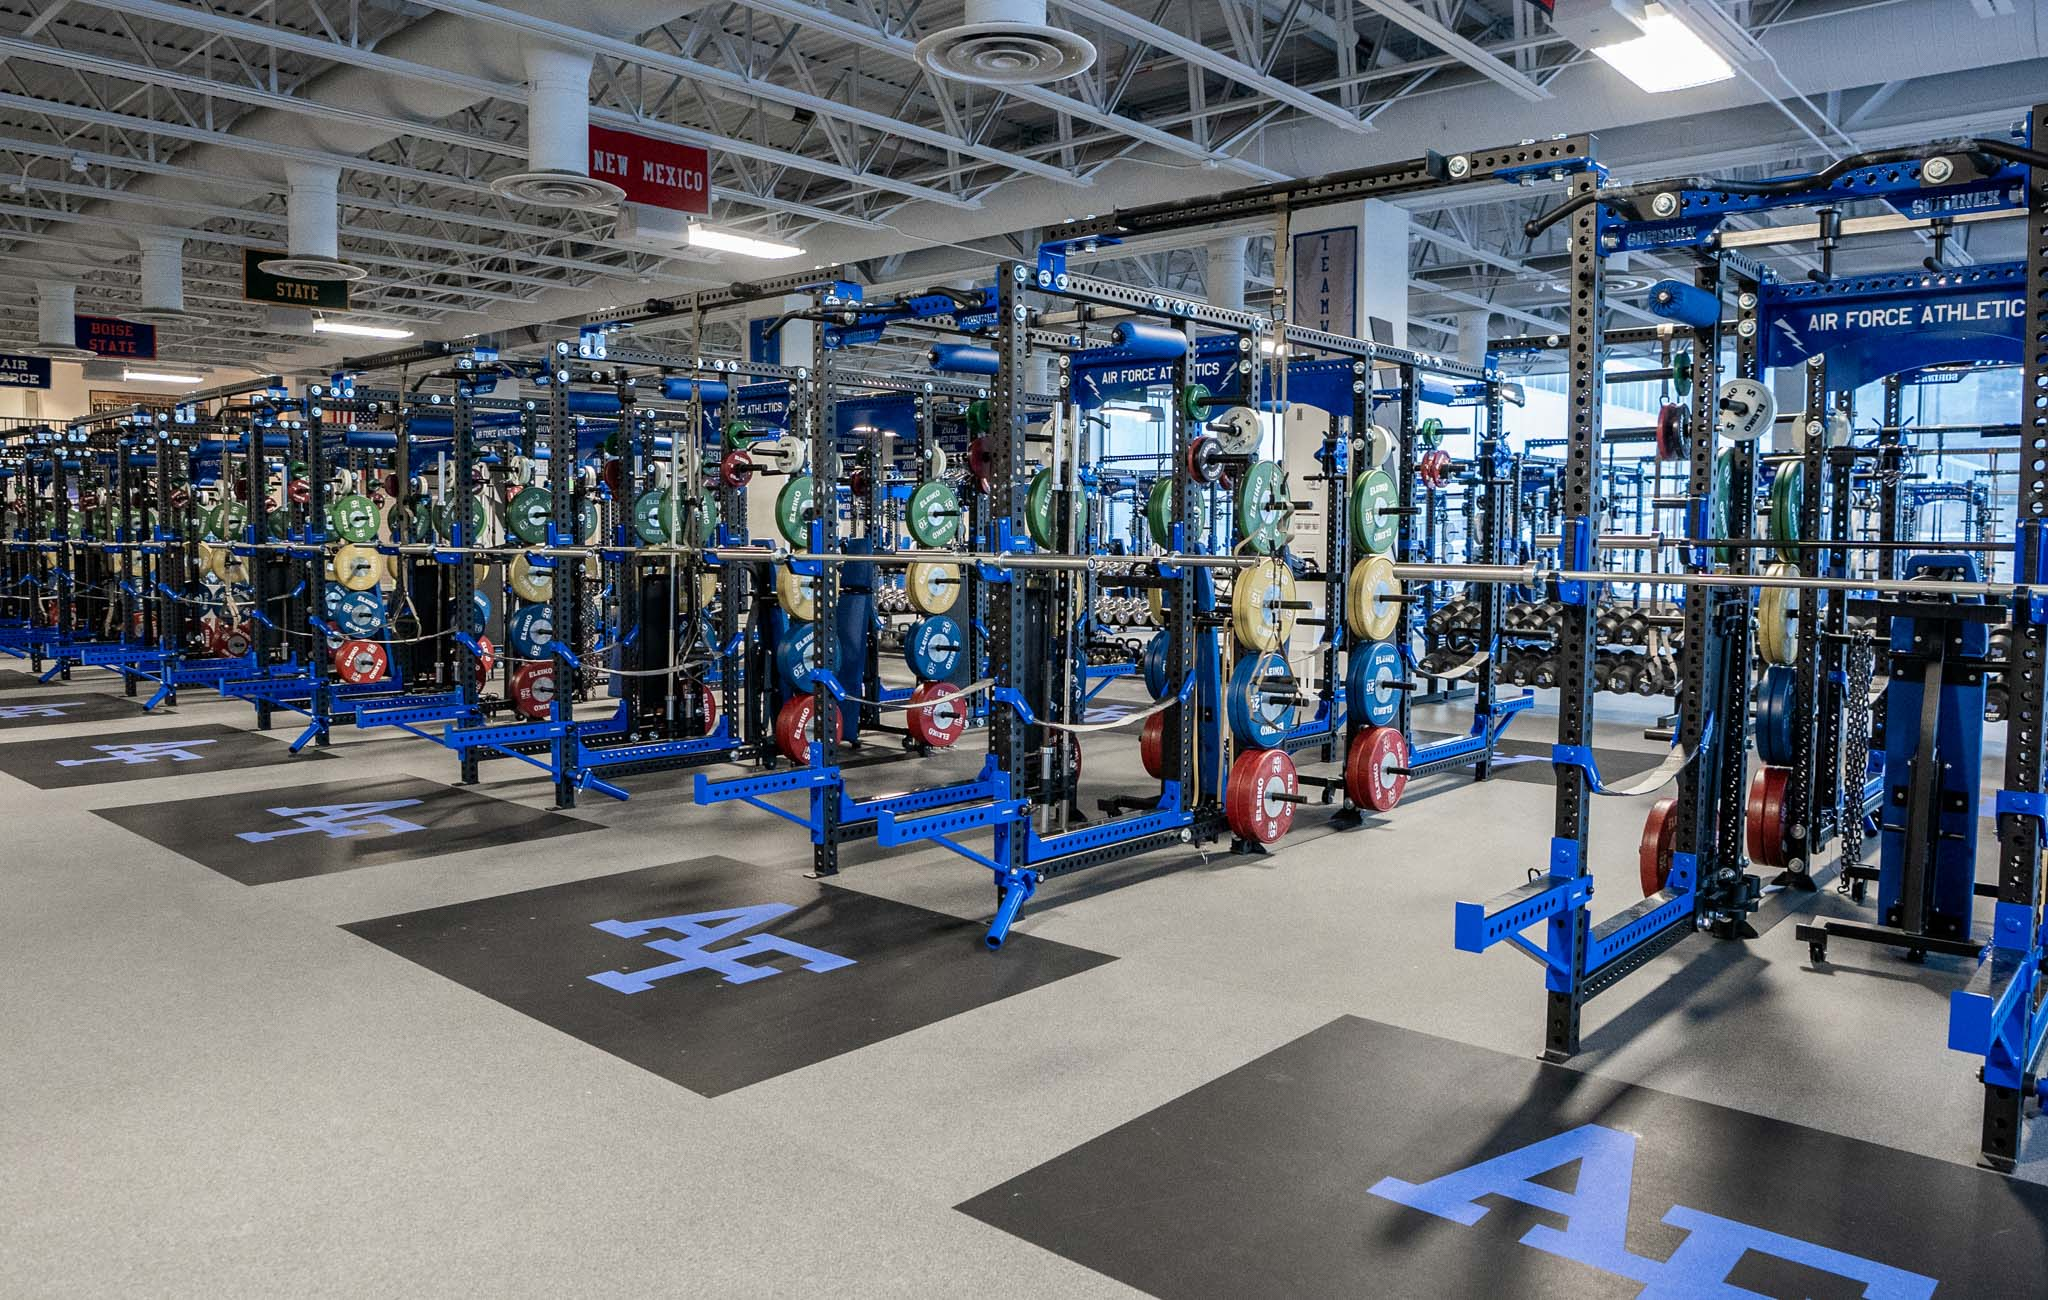 Air Force Academy Strength and Conditioning